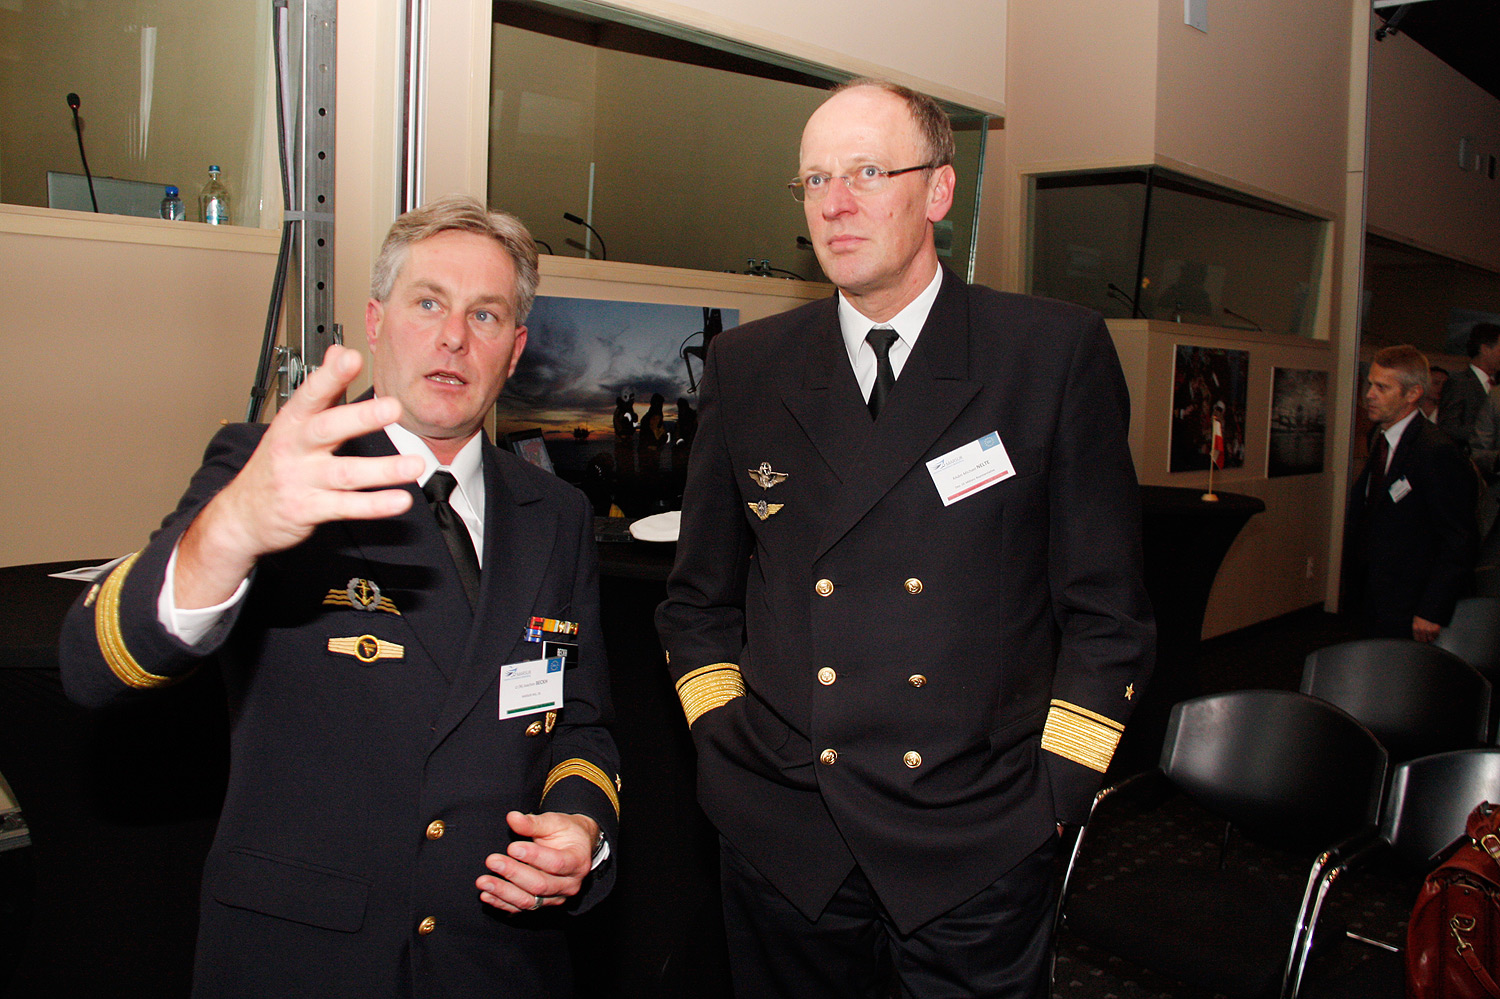 Rear Admiral Nelte from the German Military Representative to NATO and EU with Lieutenant Beckh